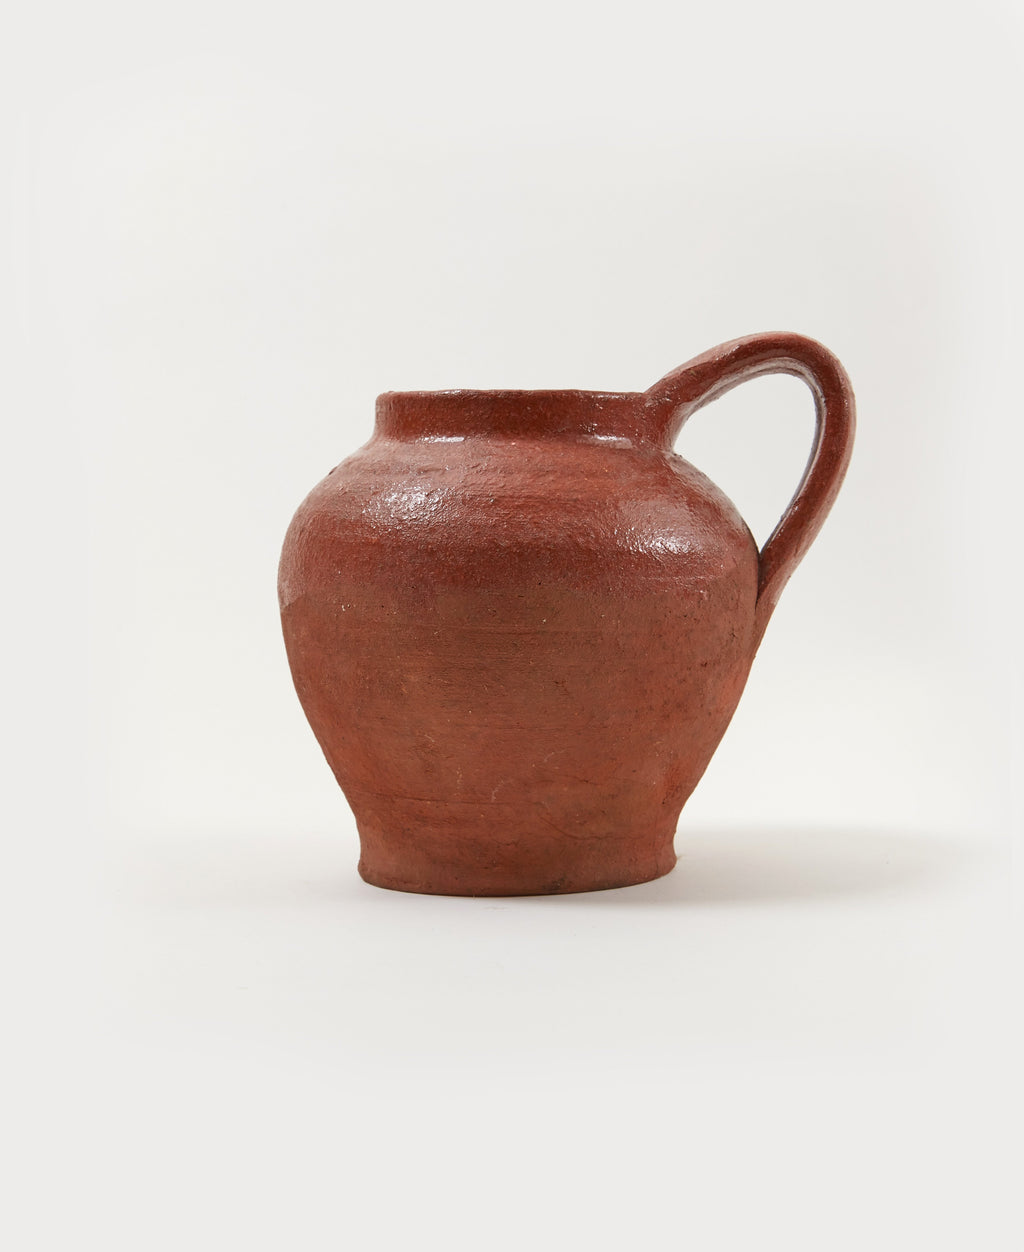 Antique Terra Cotta Water Pitcher - Il Buco Vita